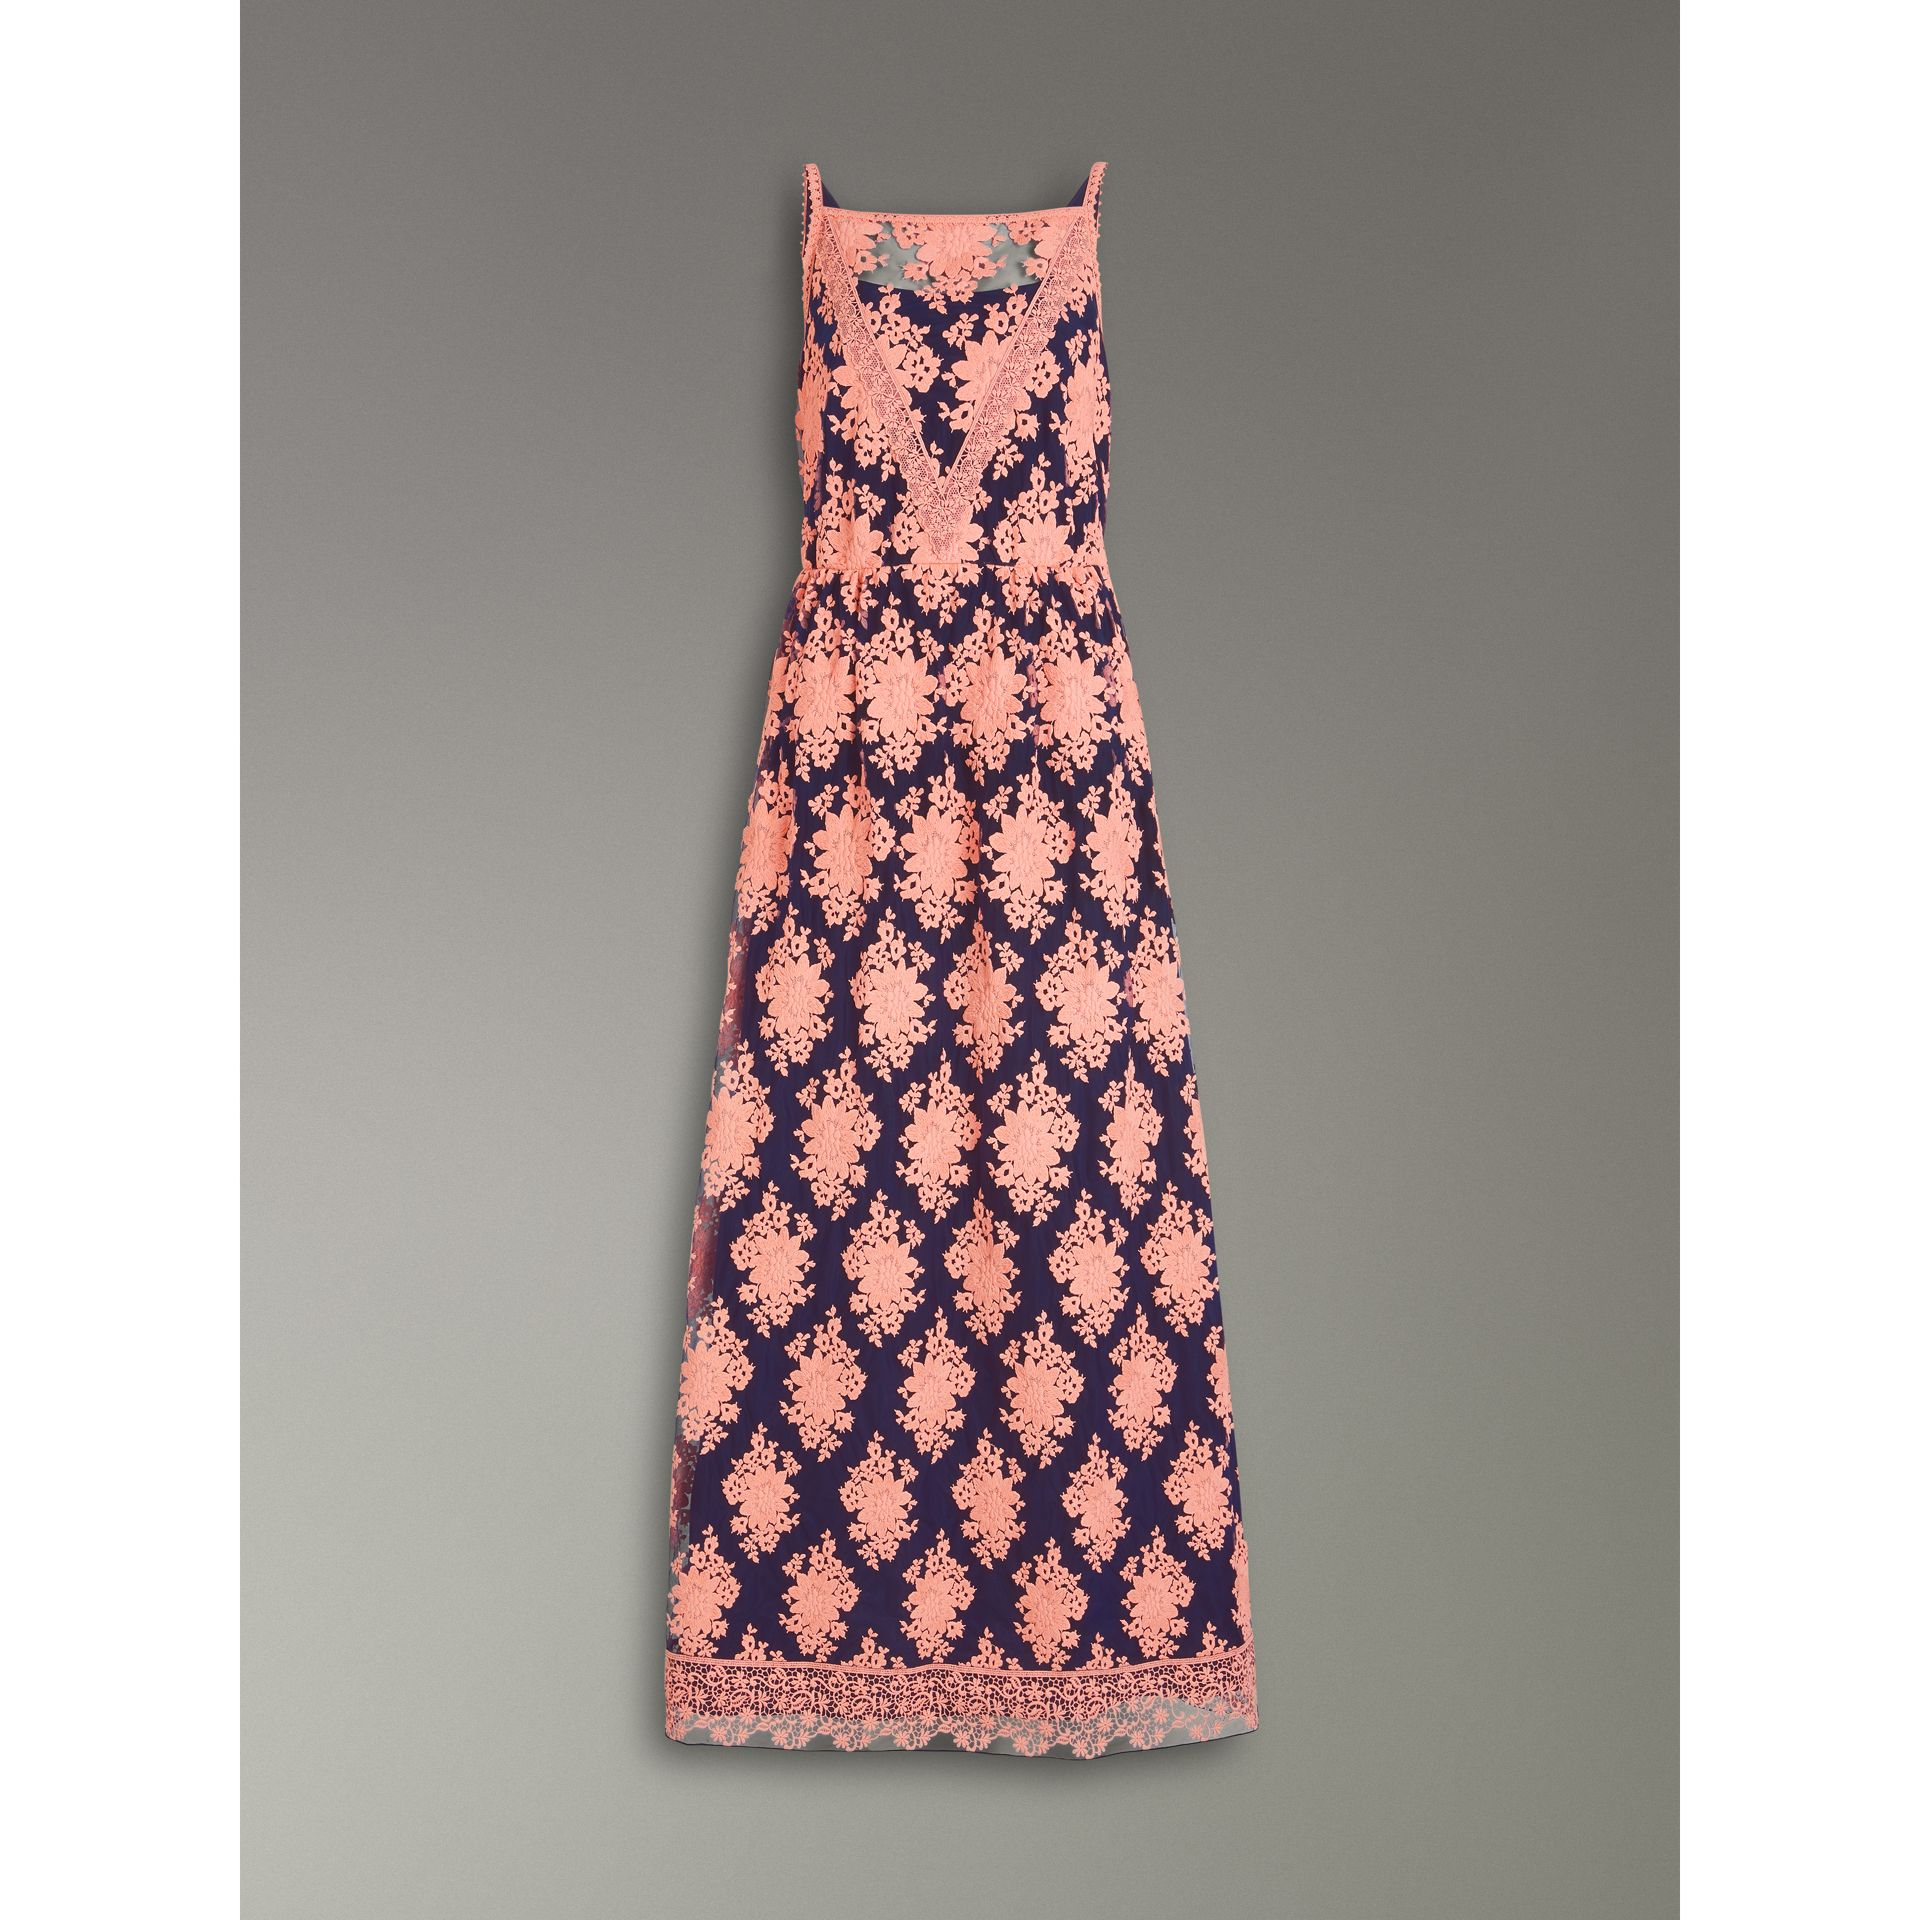 Floral-embroidered Sleeveless Dress in Rose/midnight Blue - Women | Burberry United States - gallery image 3